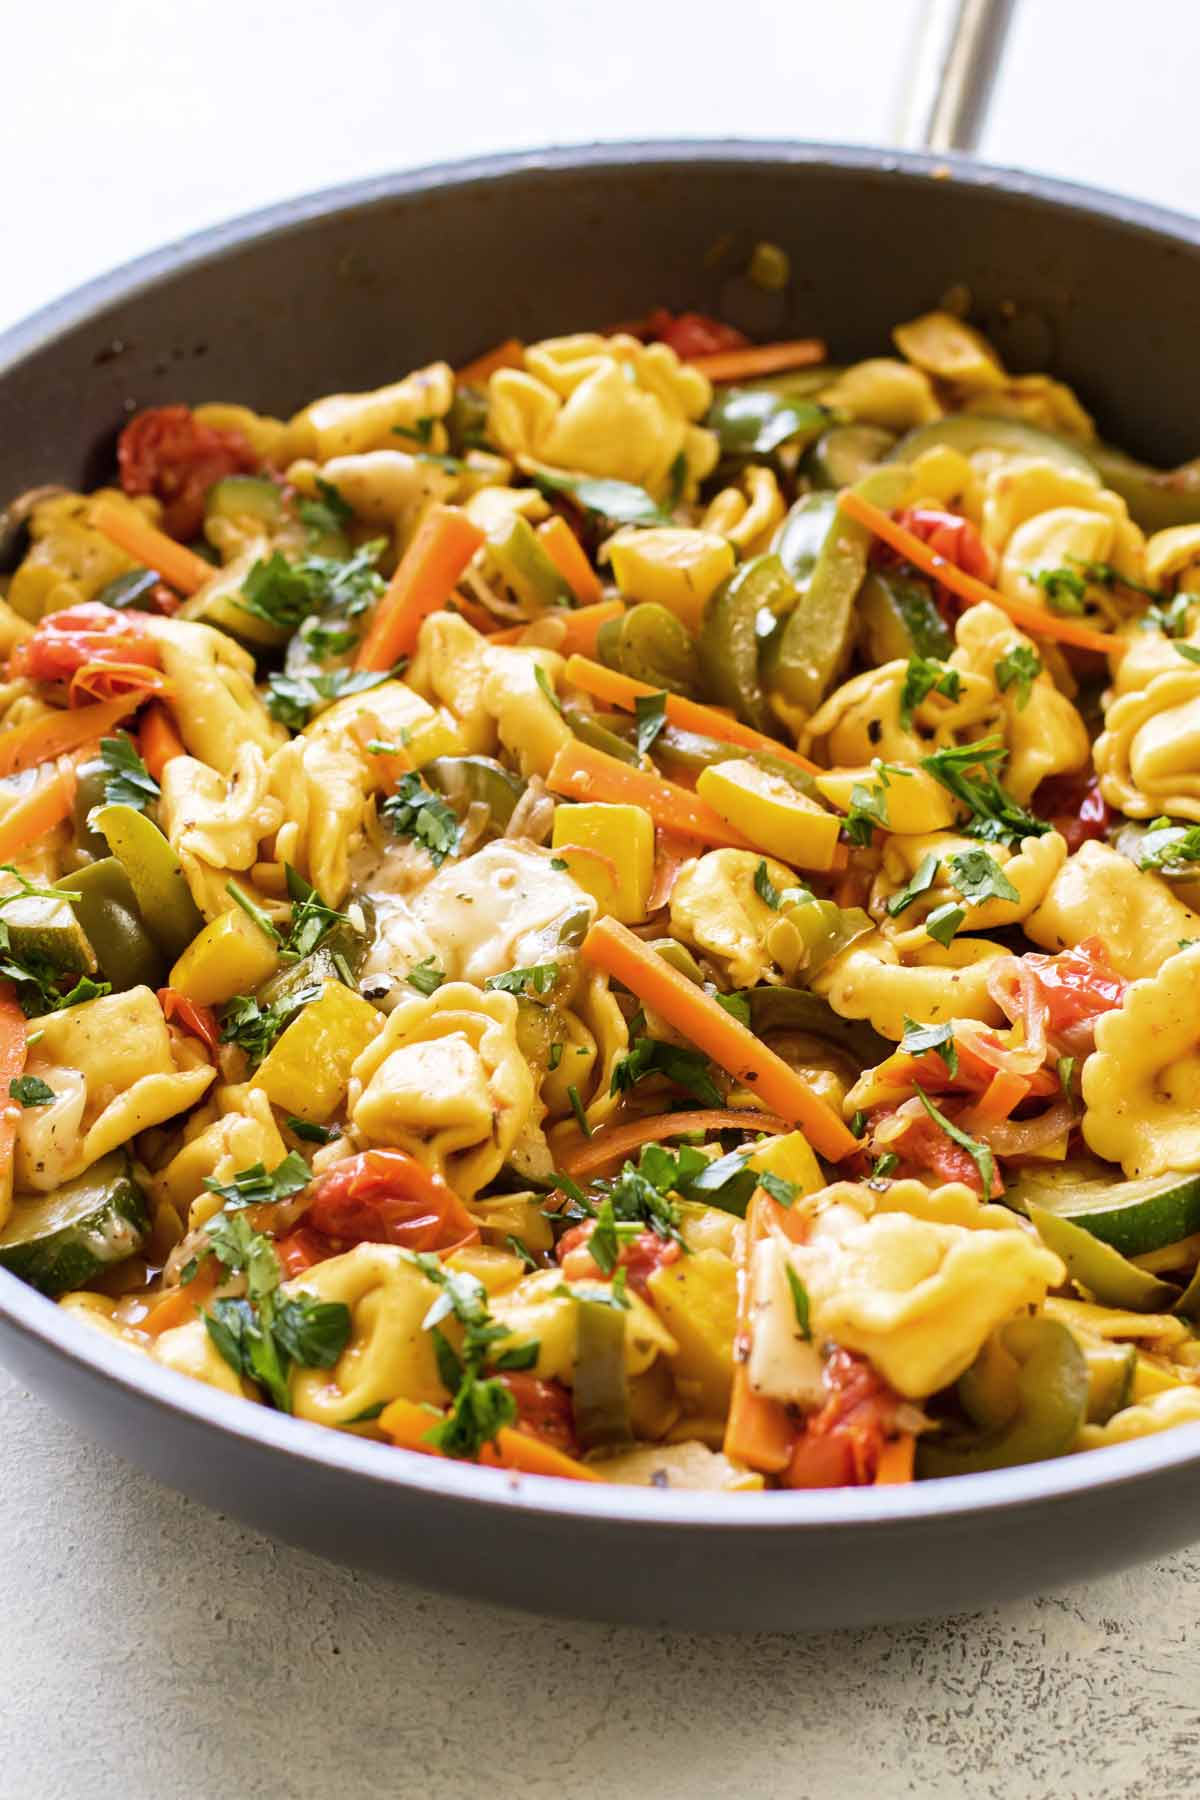 close-up photo of skillet with pasta and vegetables